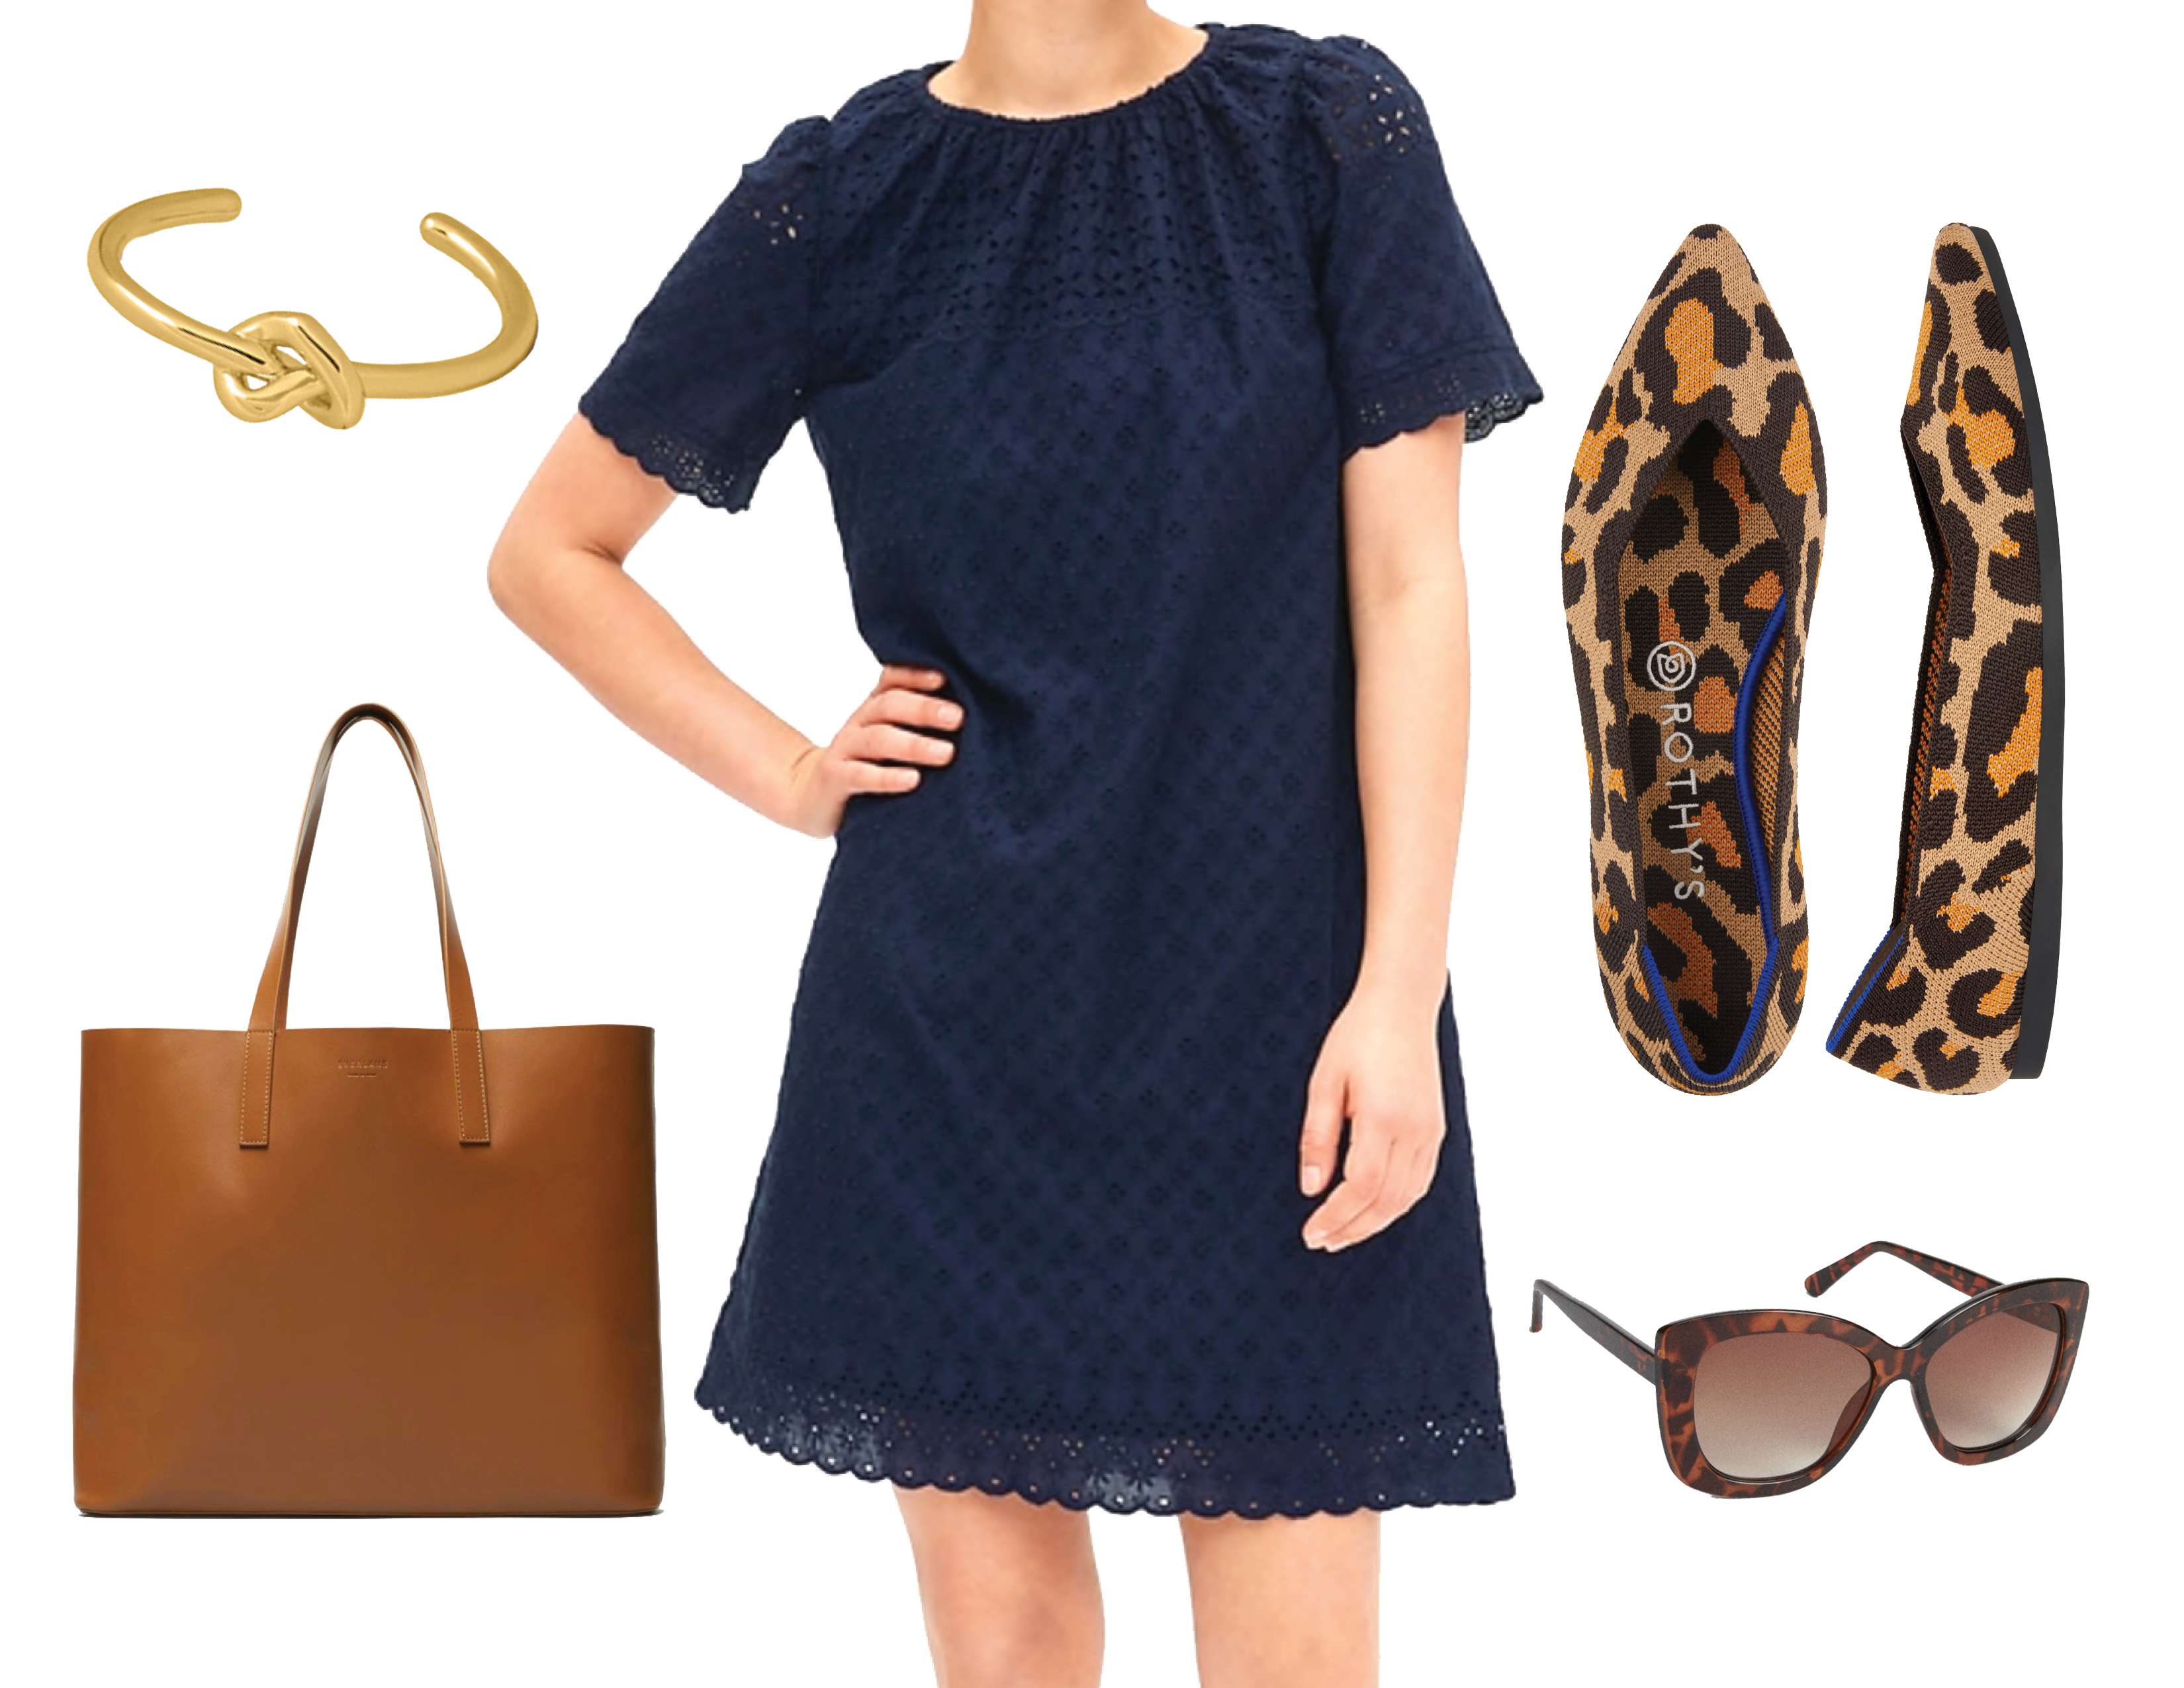 2f097b6c794c Eyelet Embroidered Shift Dress in Navy, $79.95 at Gap; Day Market Tote in  Cognac, $175 at Everlane; Cat Eye Sunglasses, $34.95 at Gap; The Point  Flats in ...